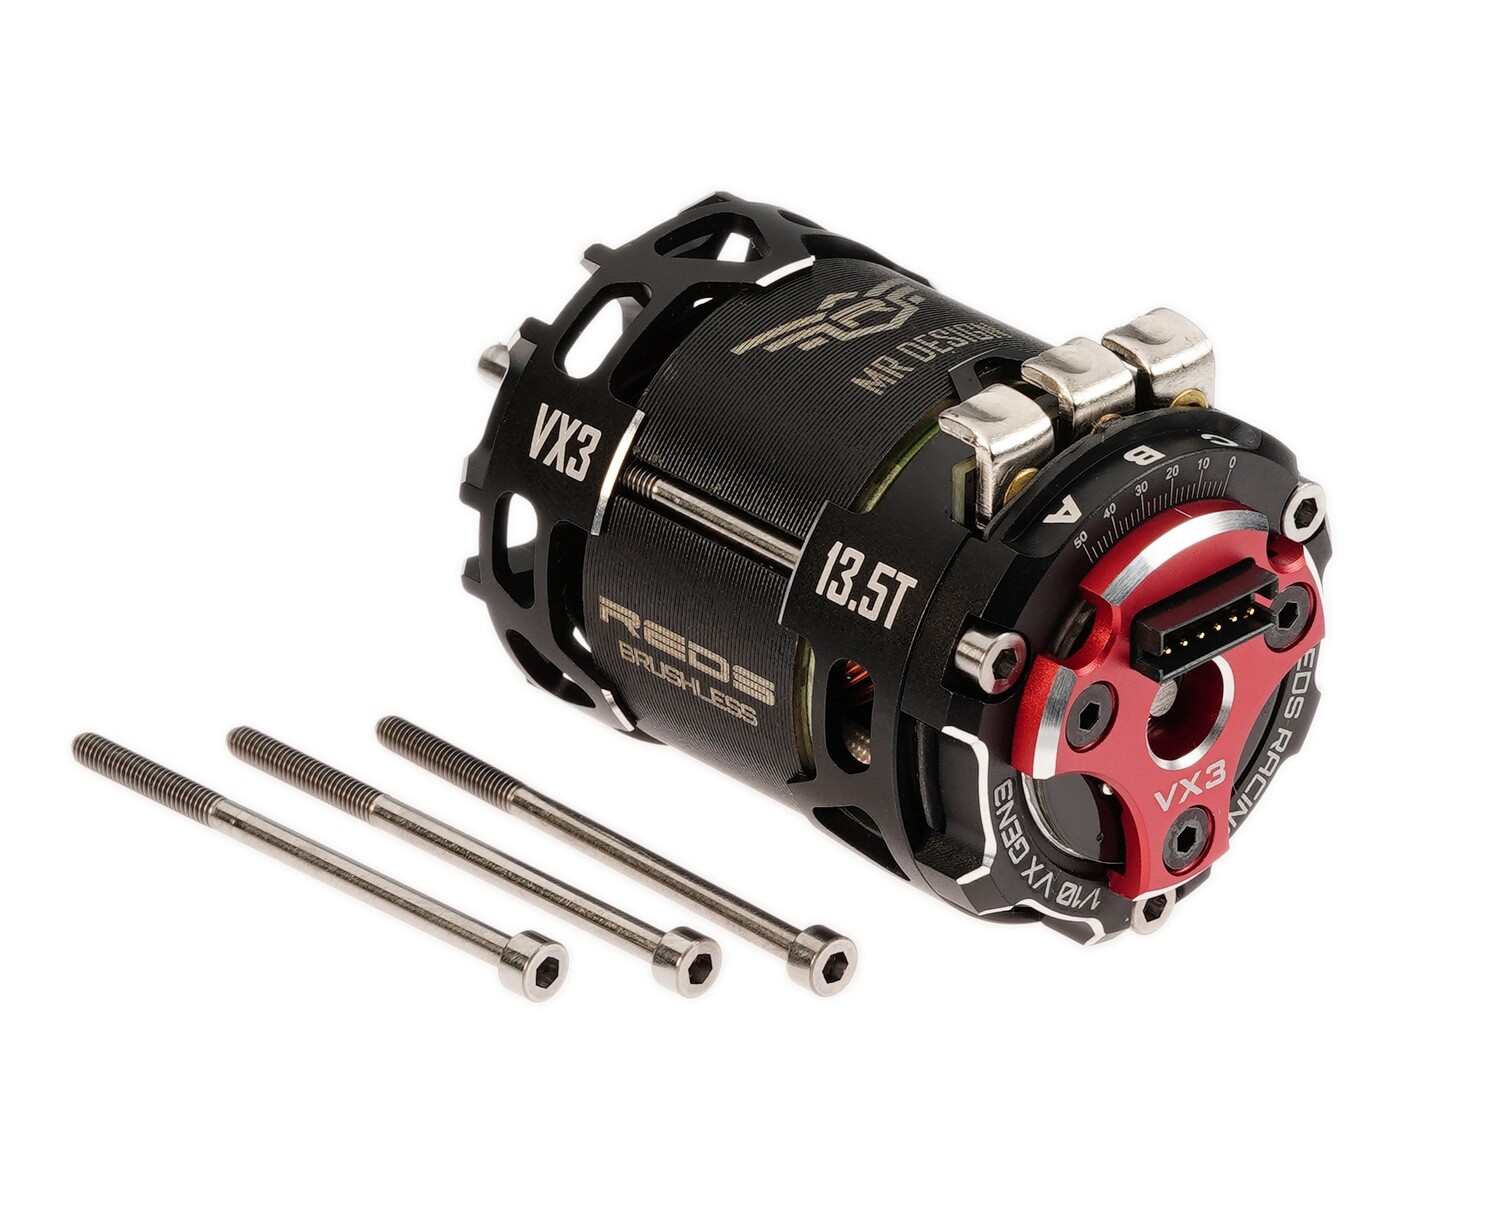 BRUSHLESS MOTOR REDS VX3 540 5.5T 2 POLE SENSORED FACTORY SELECTED